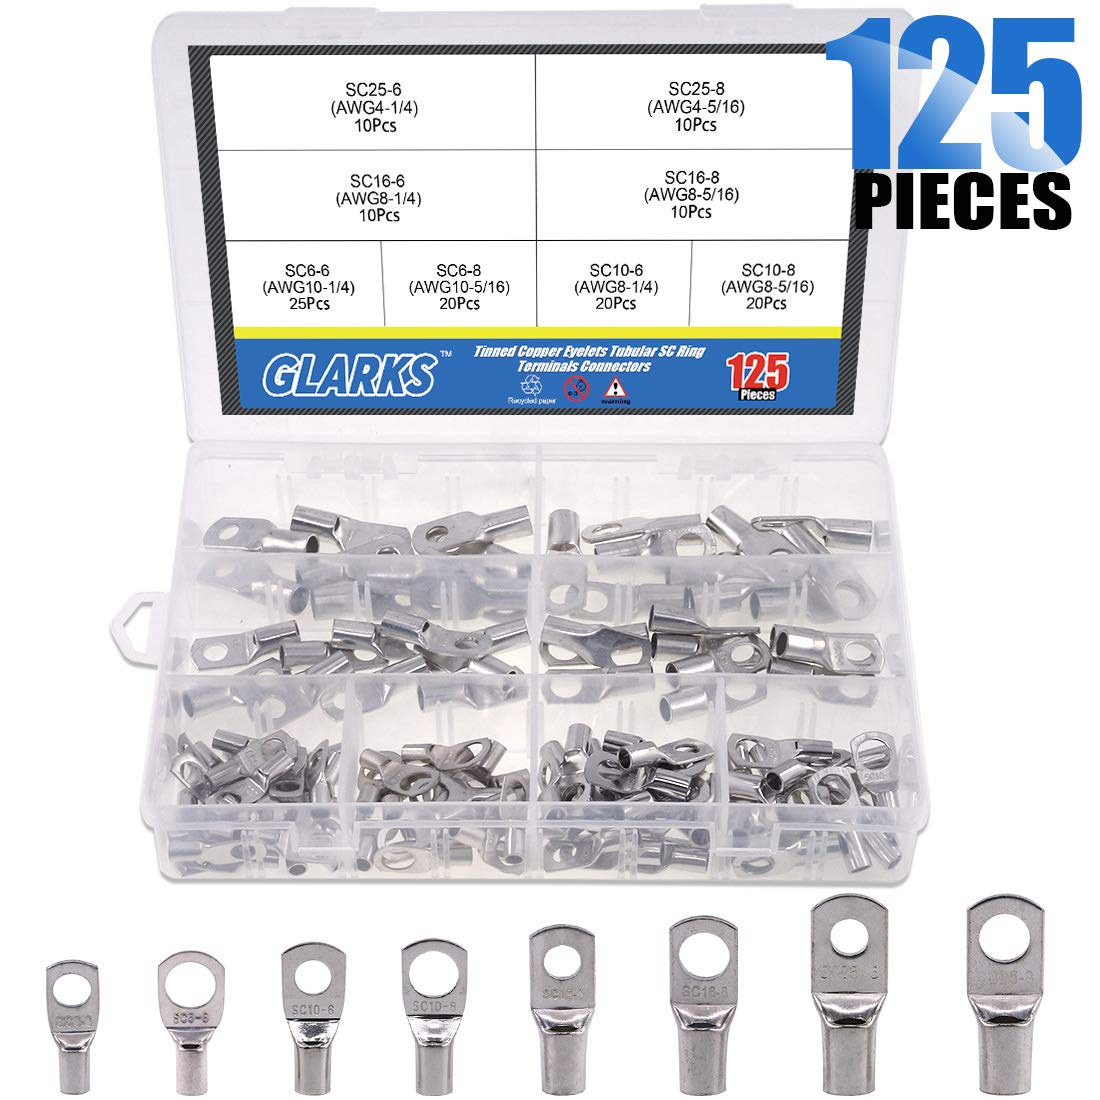 Glarks 125Pcs Marine Grade Heavy Duty Tinned Copper Wire Lugs Battery Cable Ends Eyelets SC Ring Terminal Connectors Assortment Kit by Glarks